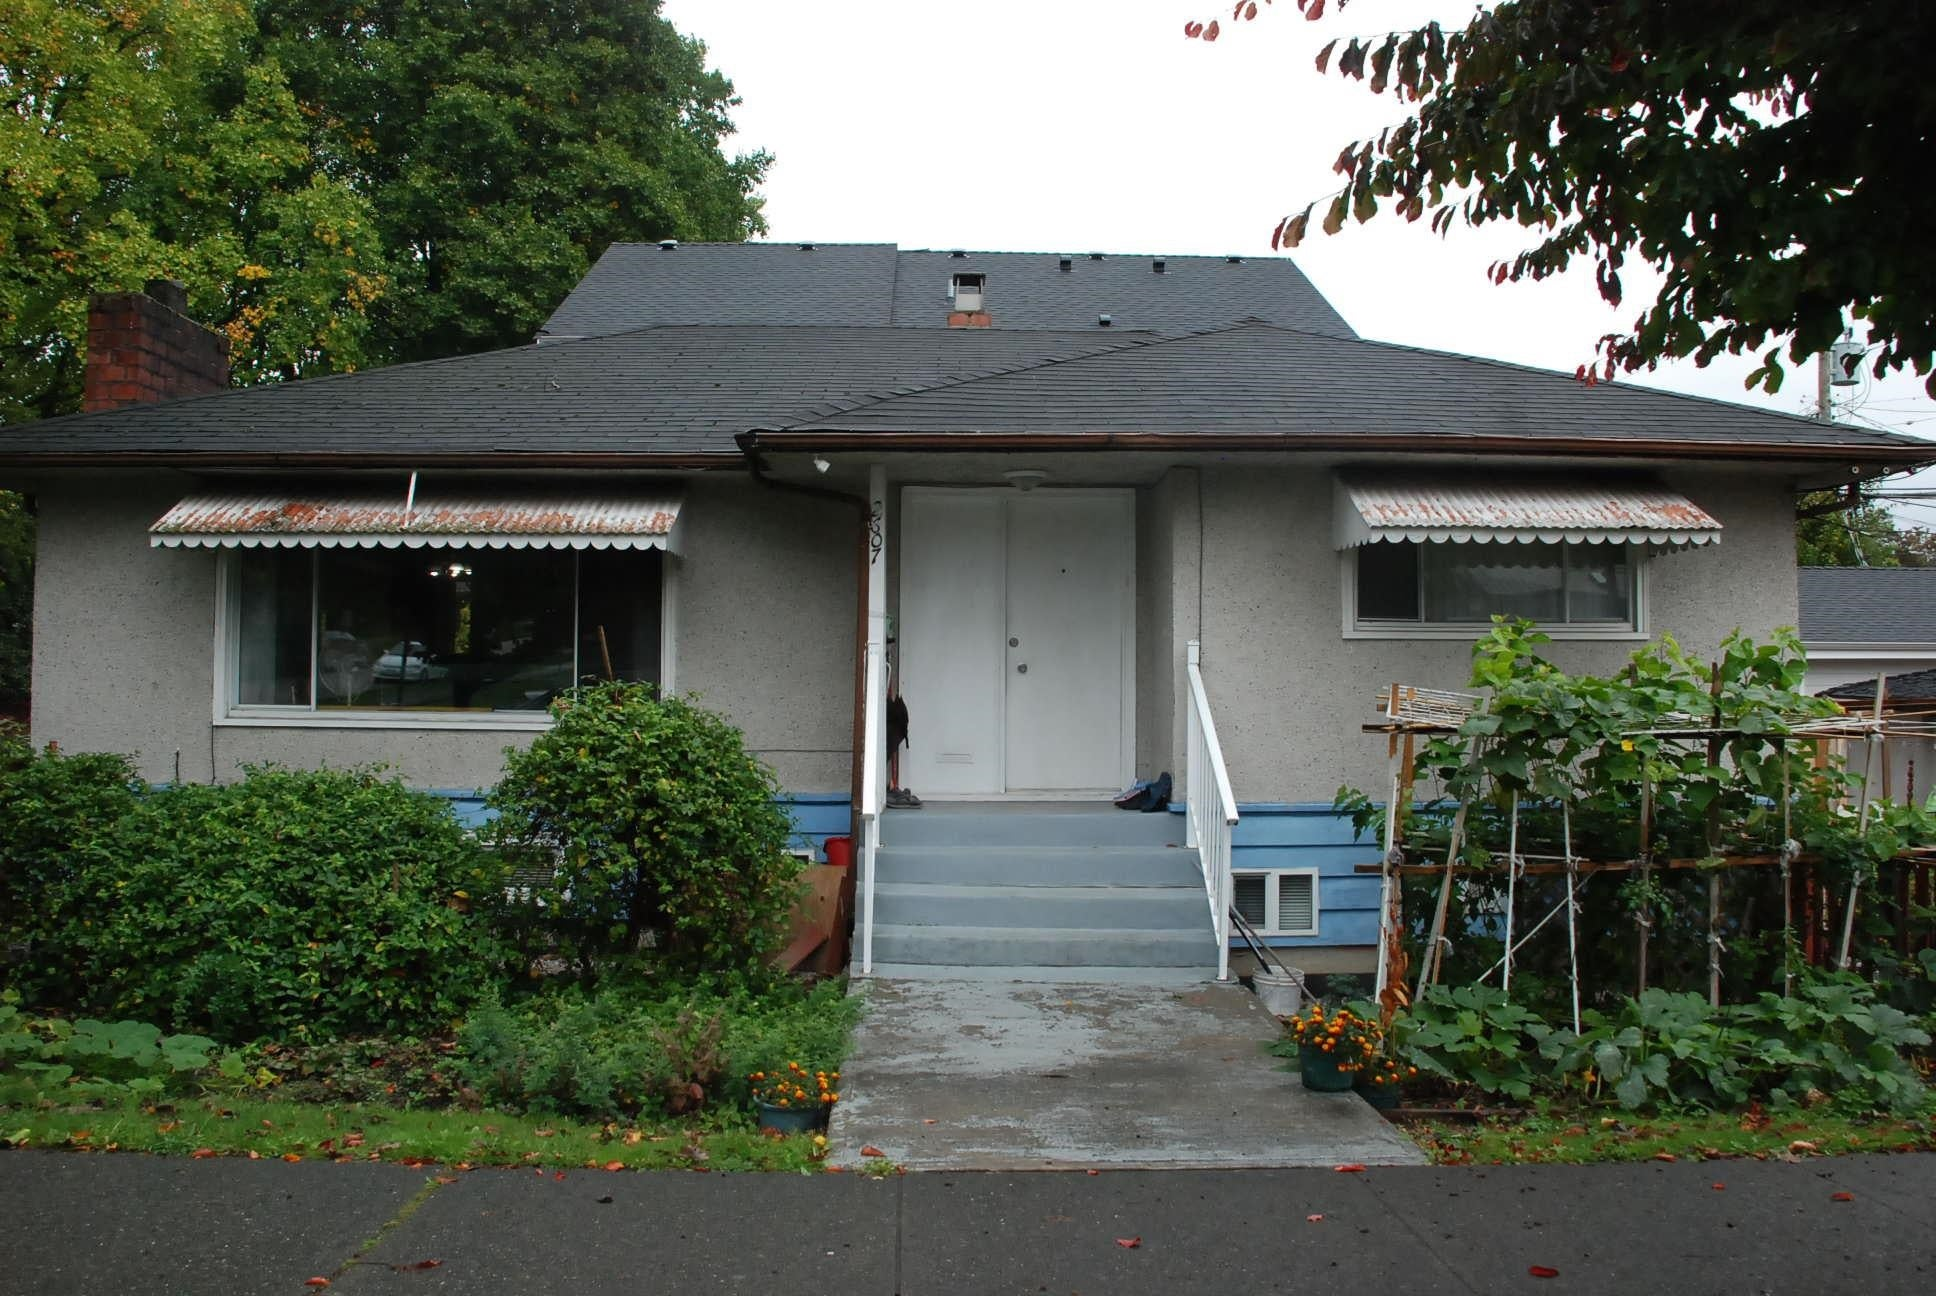 2607 E 38TH AVENUE - Collingwood VE House/Single Family for sale, 5 Bedrooms (R2622877) - #1